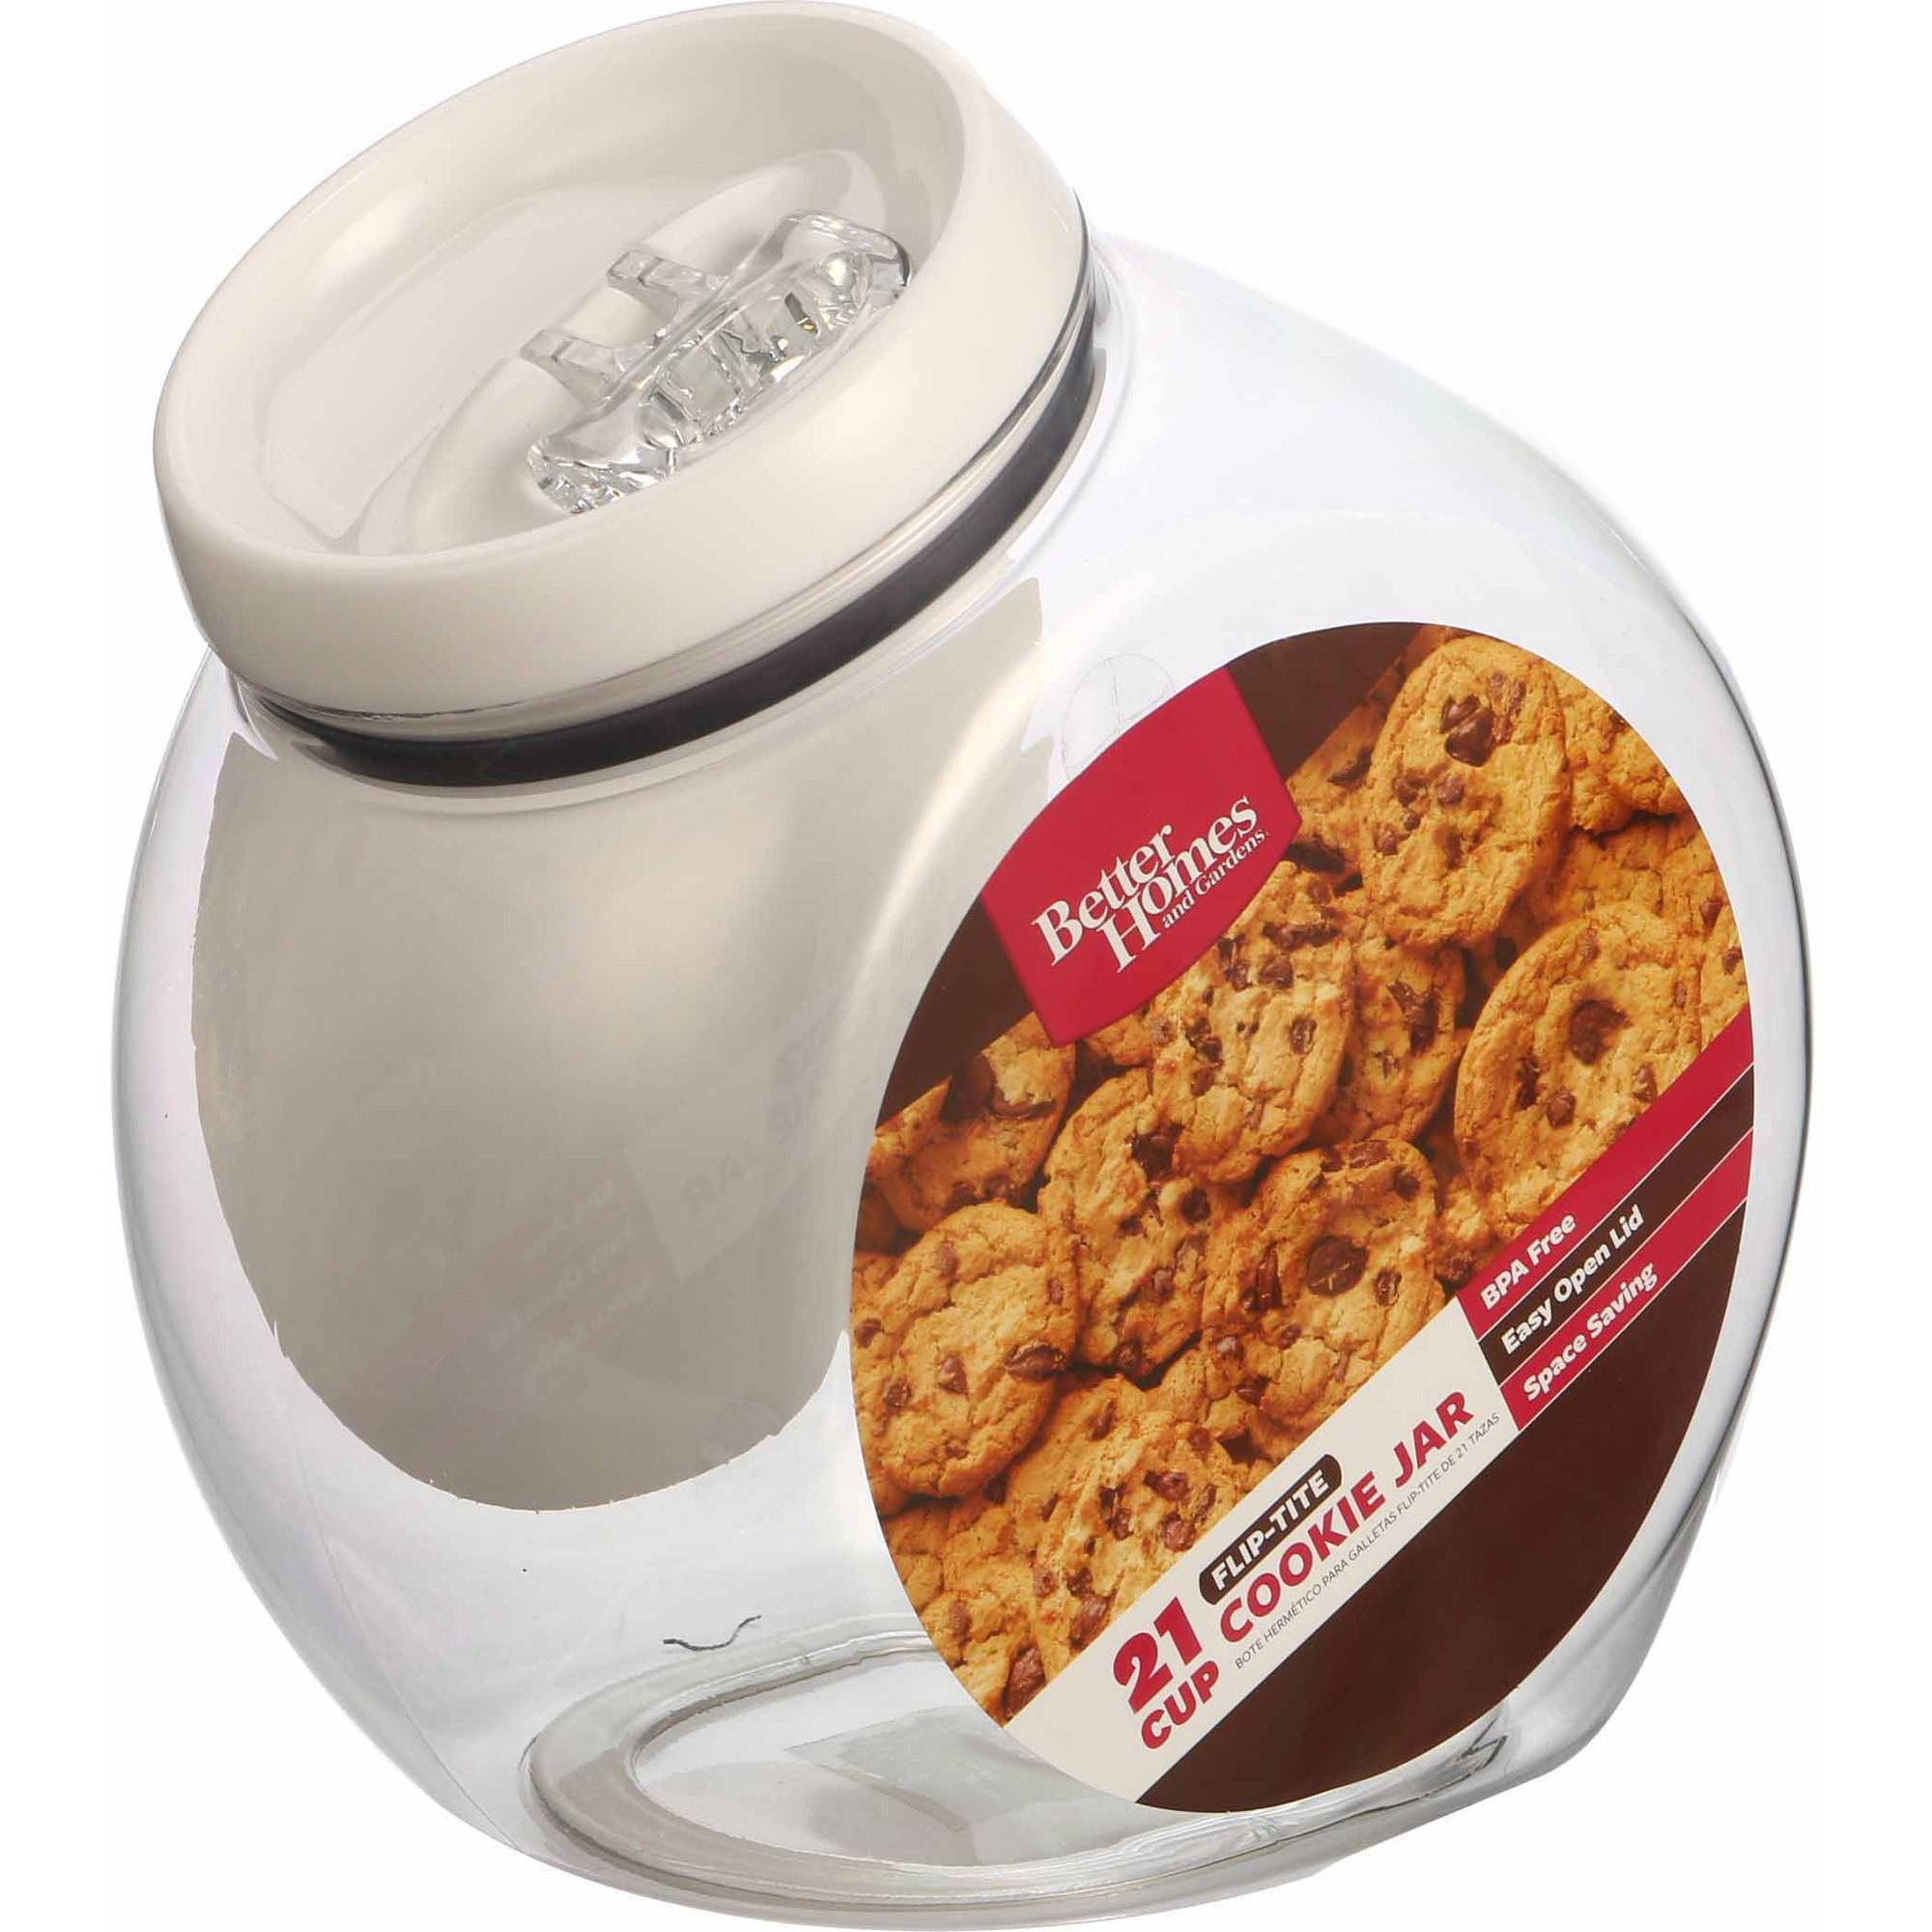 Better Homes and Gardens Flip Cookie Canister